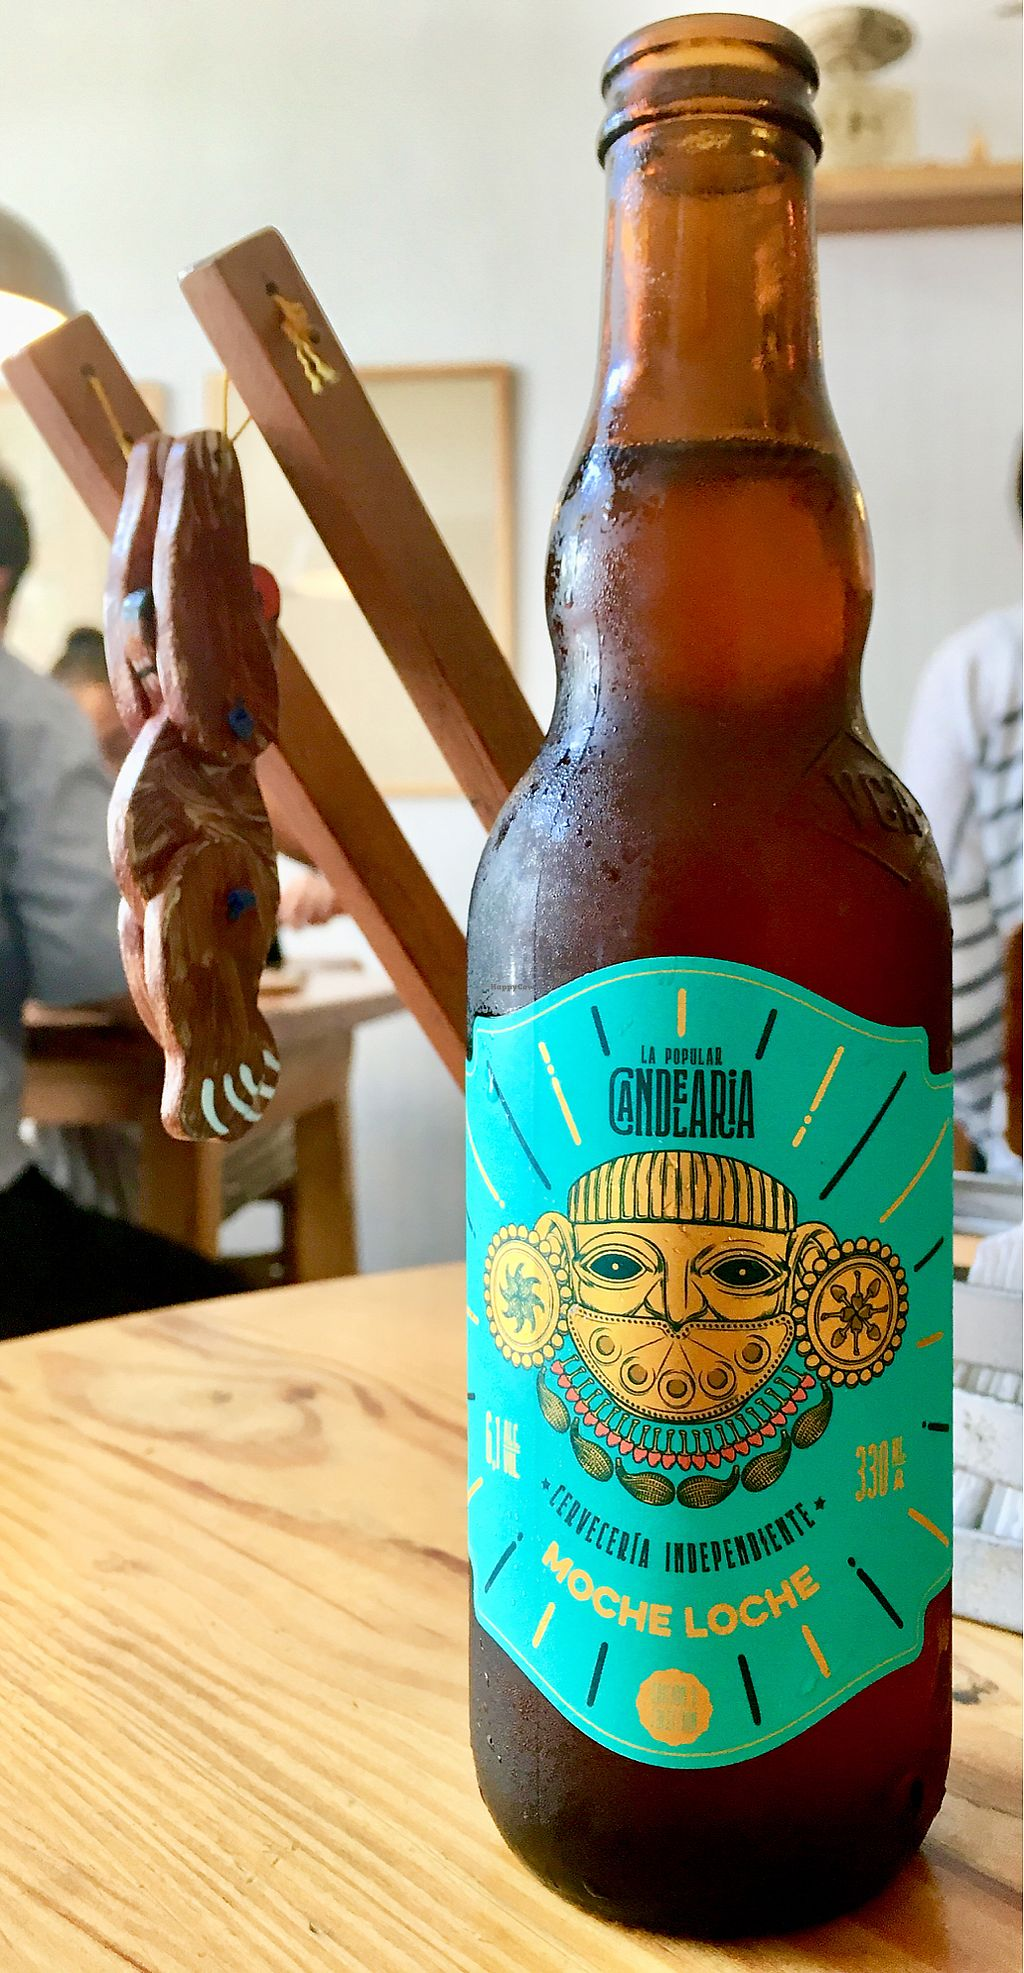 """Photo of La Verde  by <a href=""""/members/profile/milos99"""">milos99</a> <br/>A variety of wines and craft beers - this one is Peruvian! <br/> March 27, 2018  - <a href='/contact/abuse/image/64792/376876'>Report</a>"""